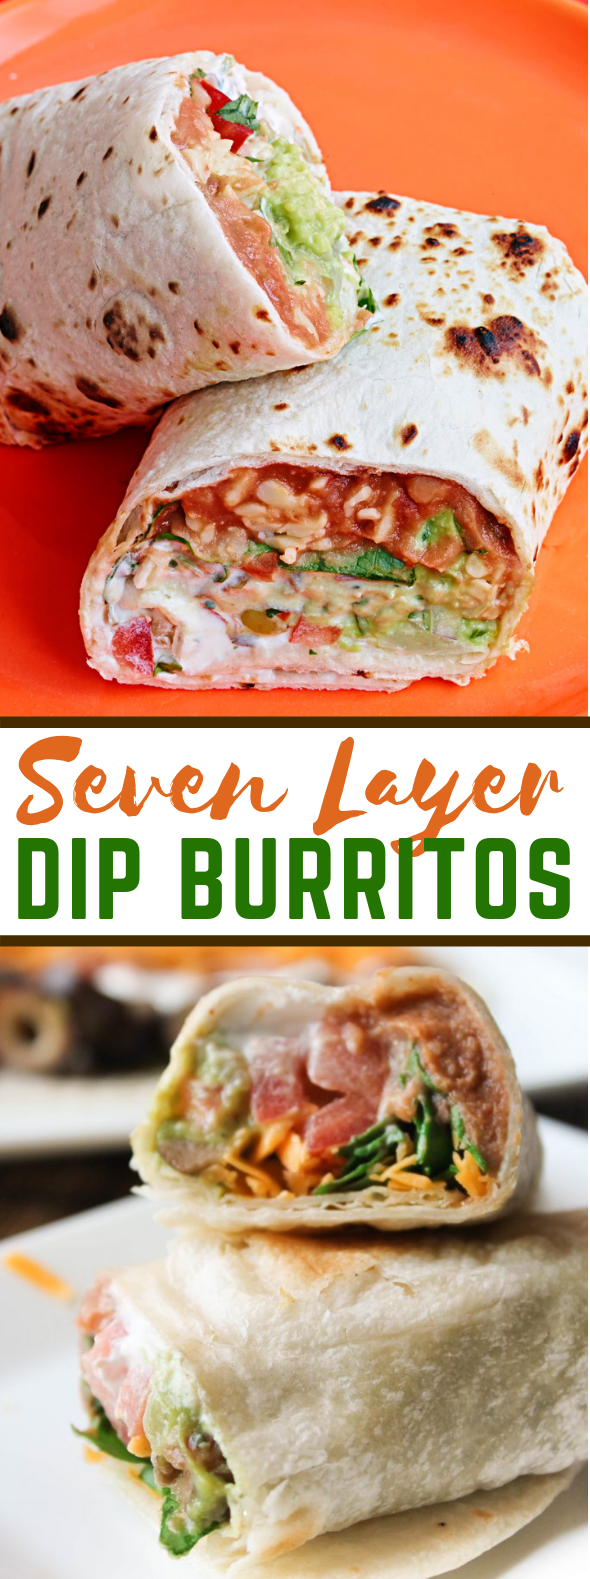 7 LAYER DIP BURRITOS #lunch #meal